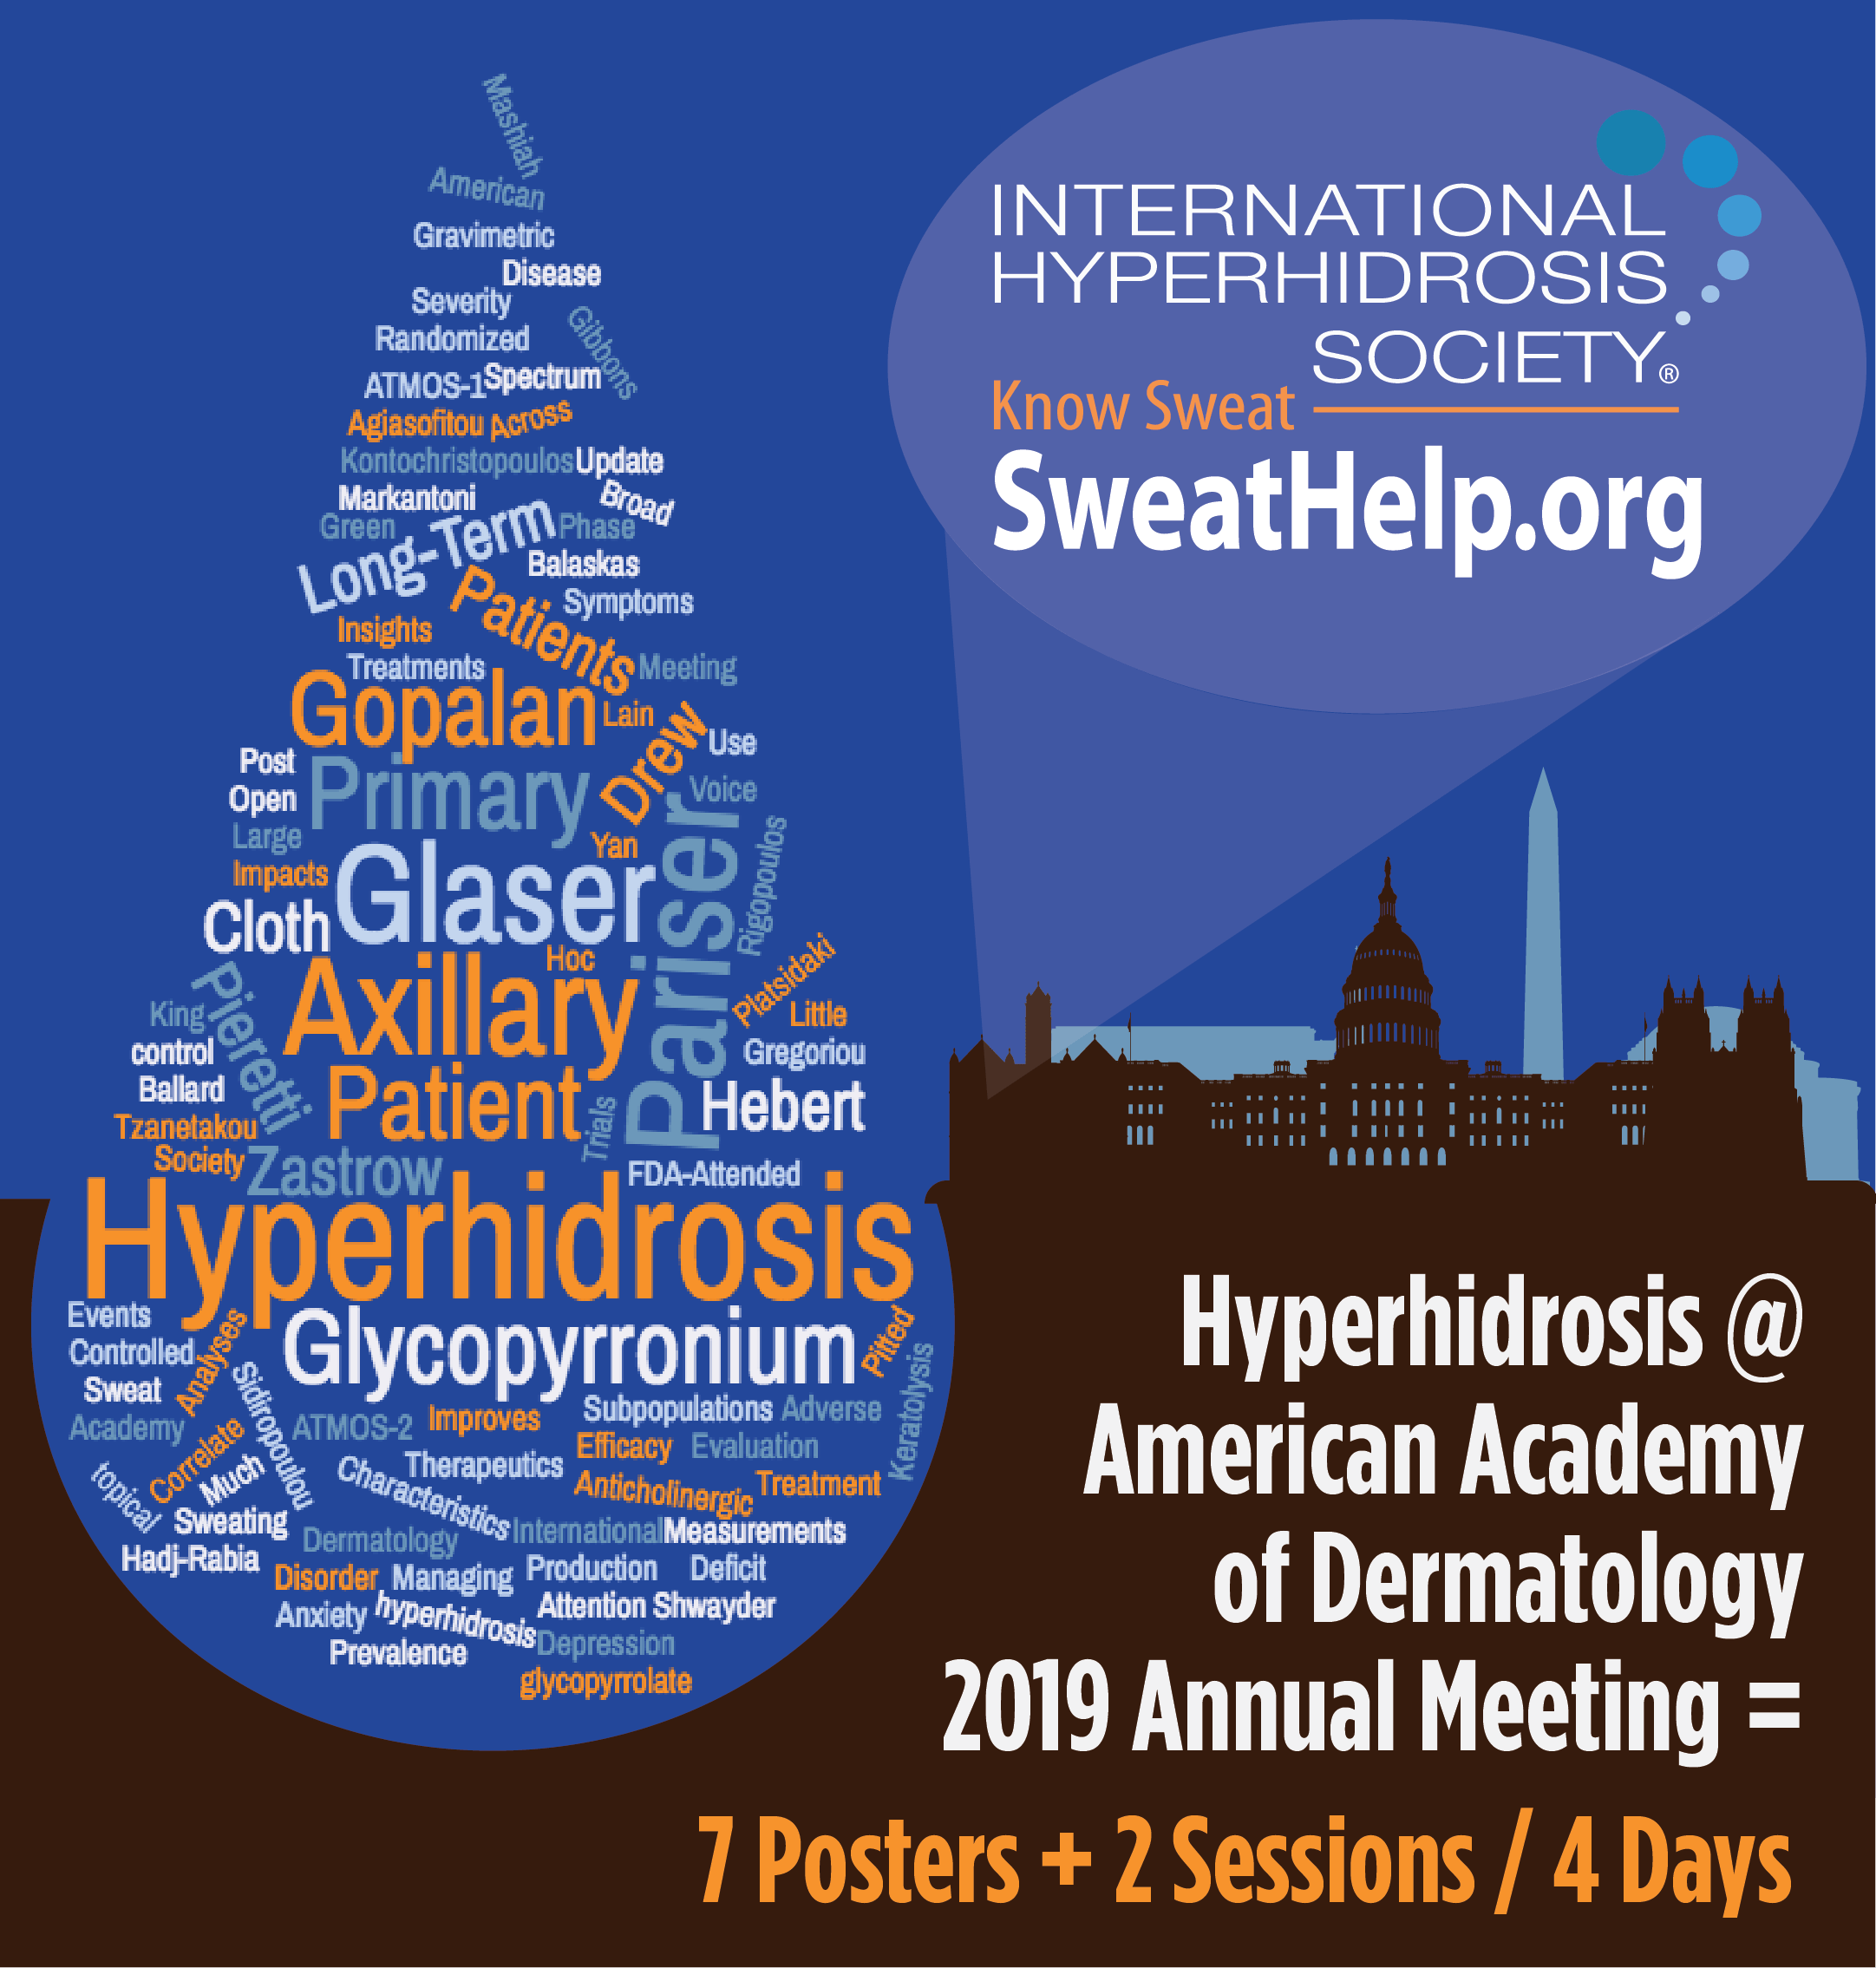 Hyperhidrosis @ AAD = 7 Posters + 2 Sessions / 4 Days